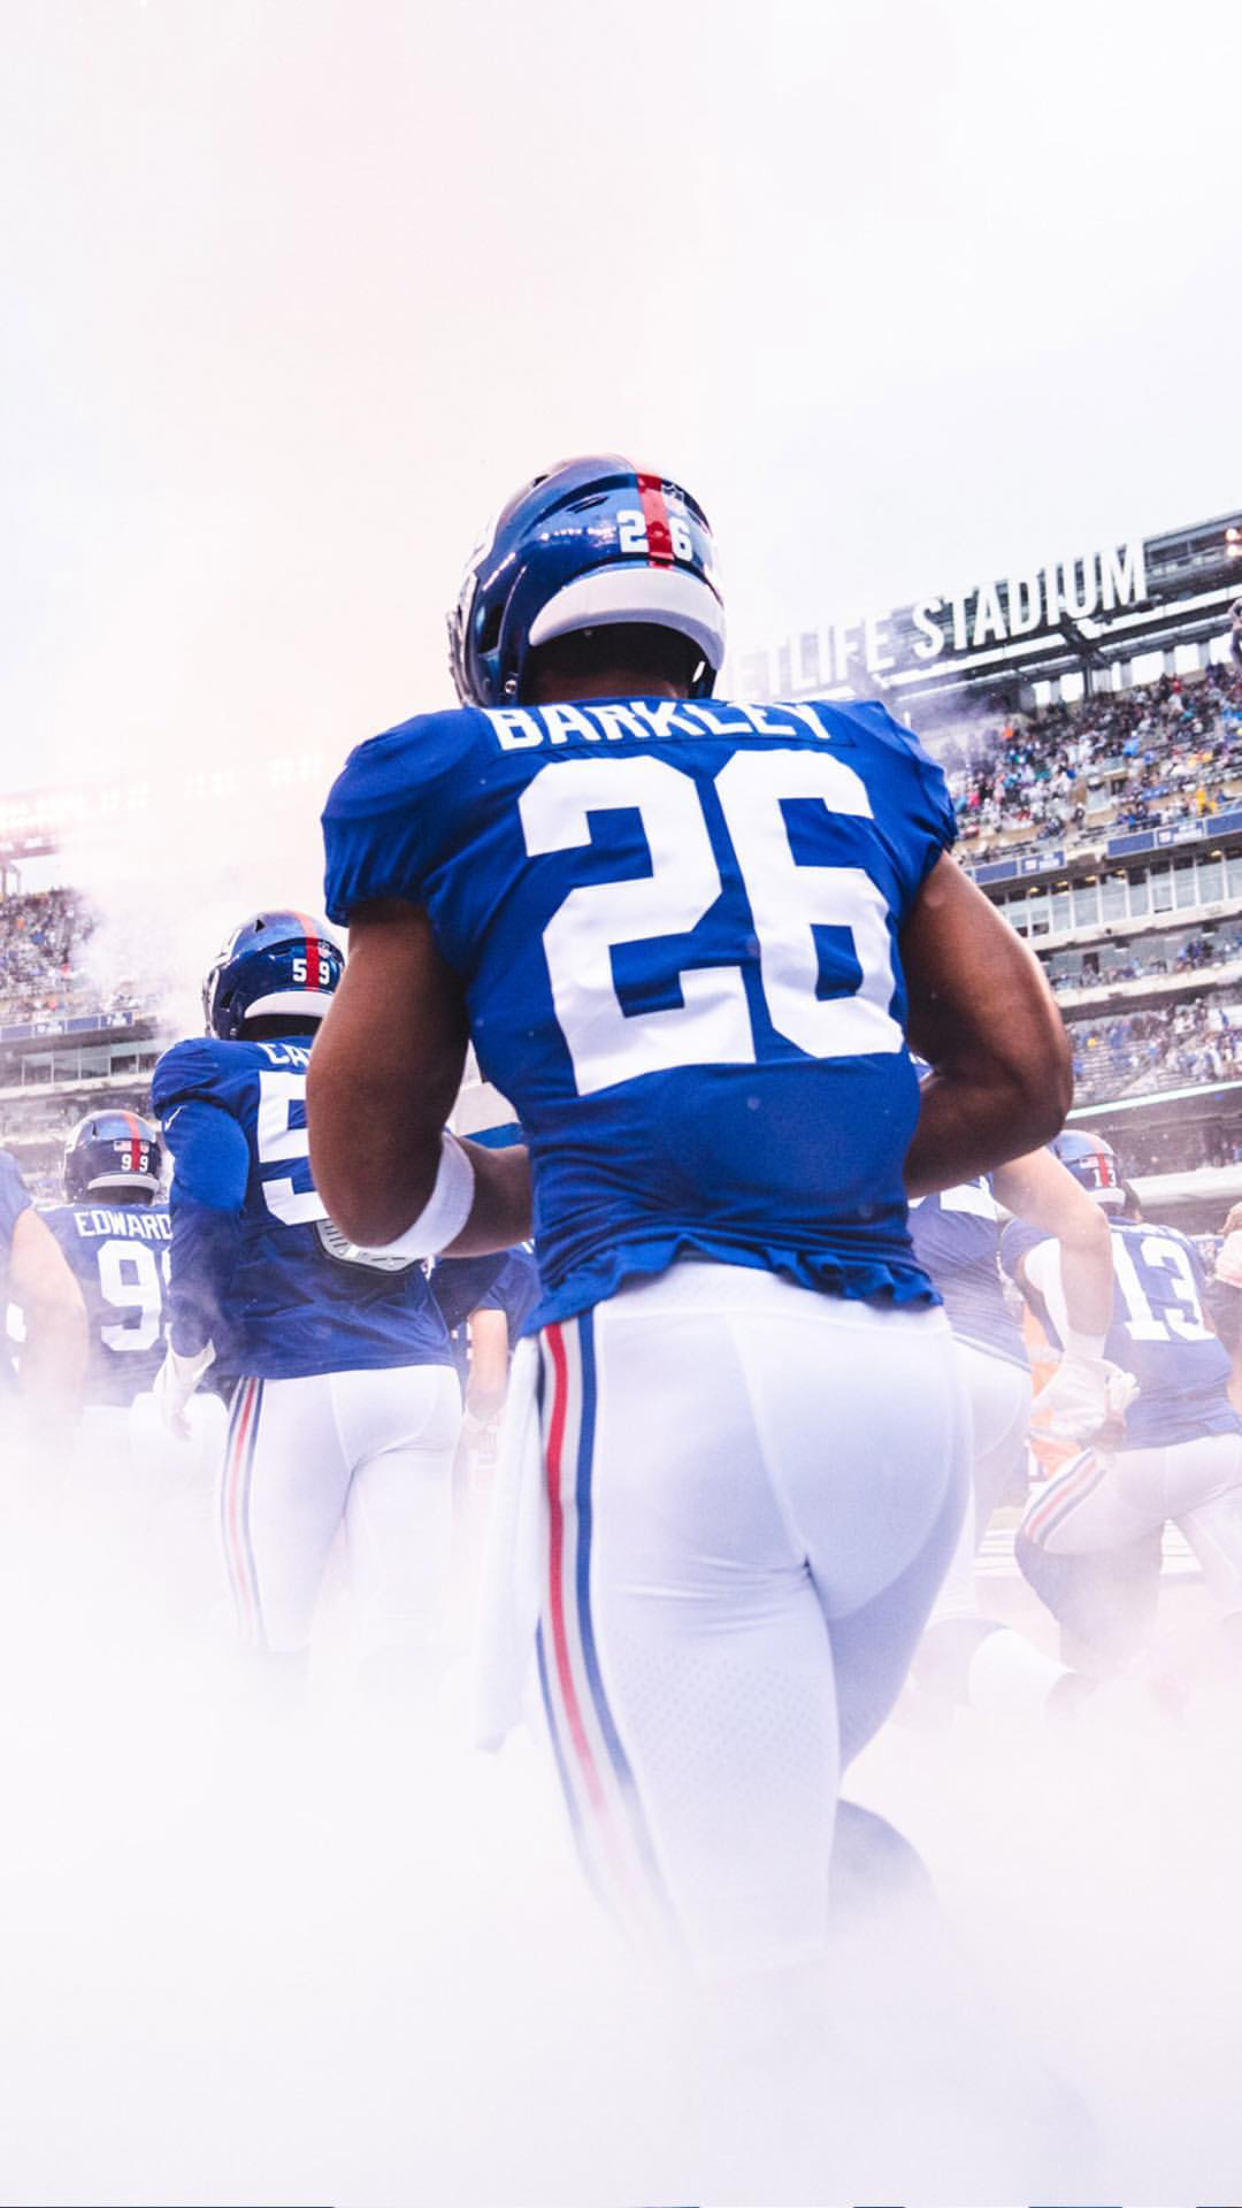 reputable site abc34 7657b NY Giants #26 Saquon Barkley | New York Giants | New york ...